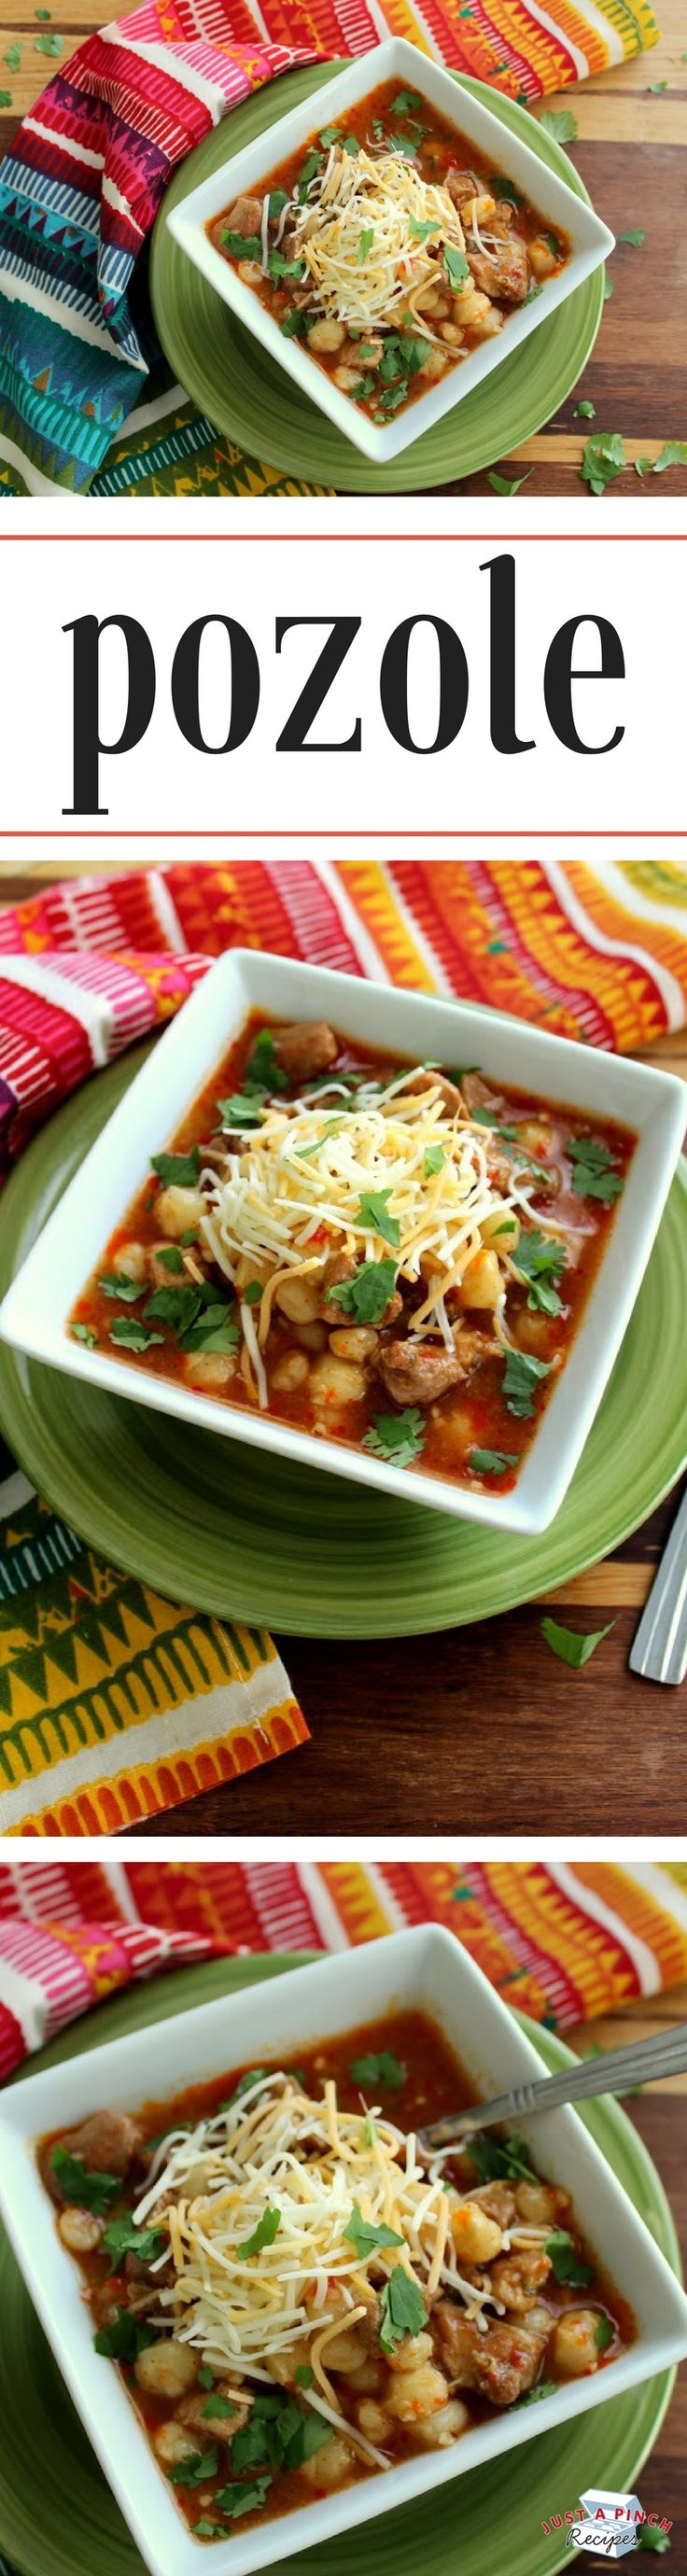 The pressure cooker really cooks this pork, to melt in your mouth perfection. The soup is spicy and garlicky with a hint of tomato flavor. Add a little cheese and cilantro and you have a fiesta in a bowl.